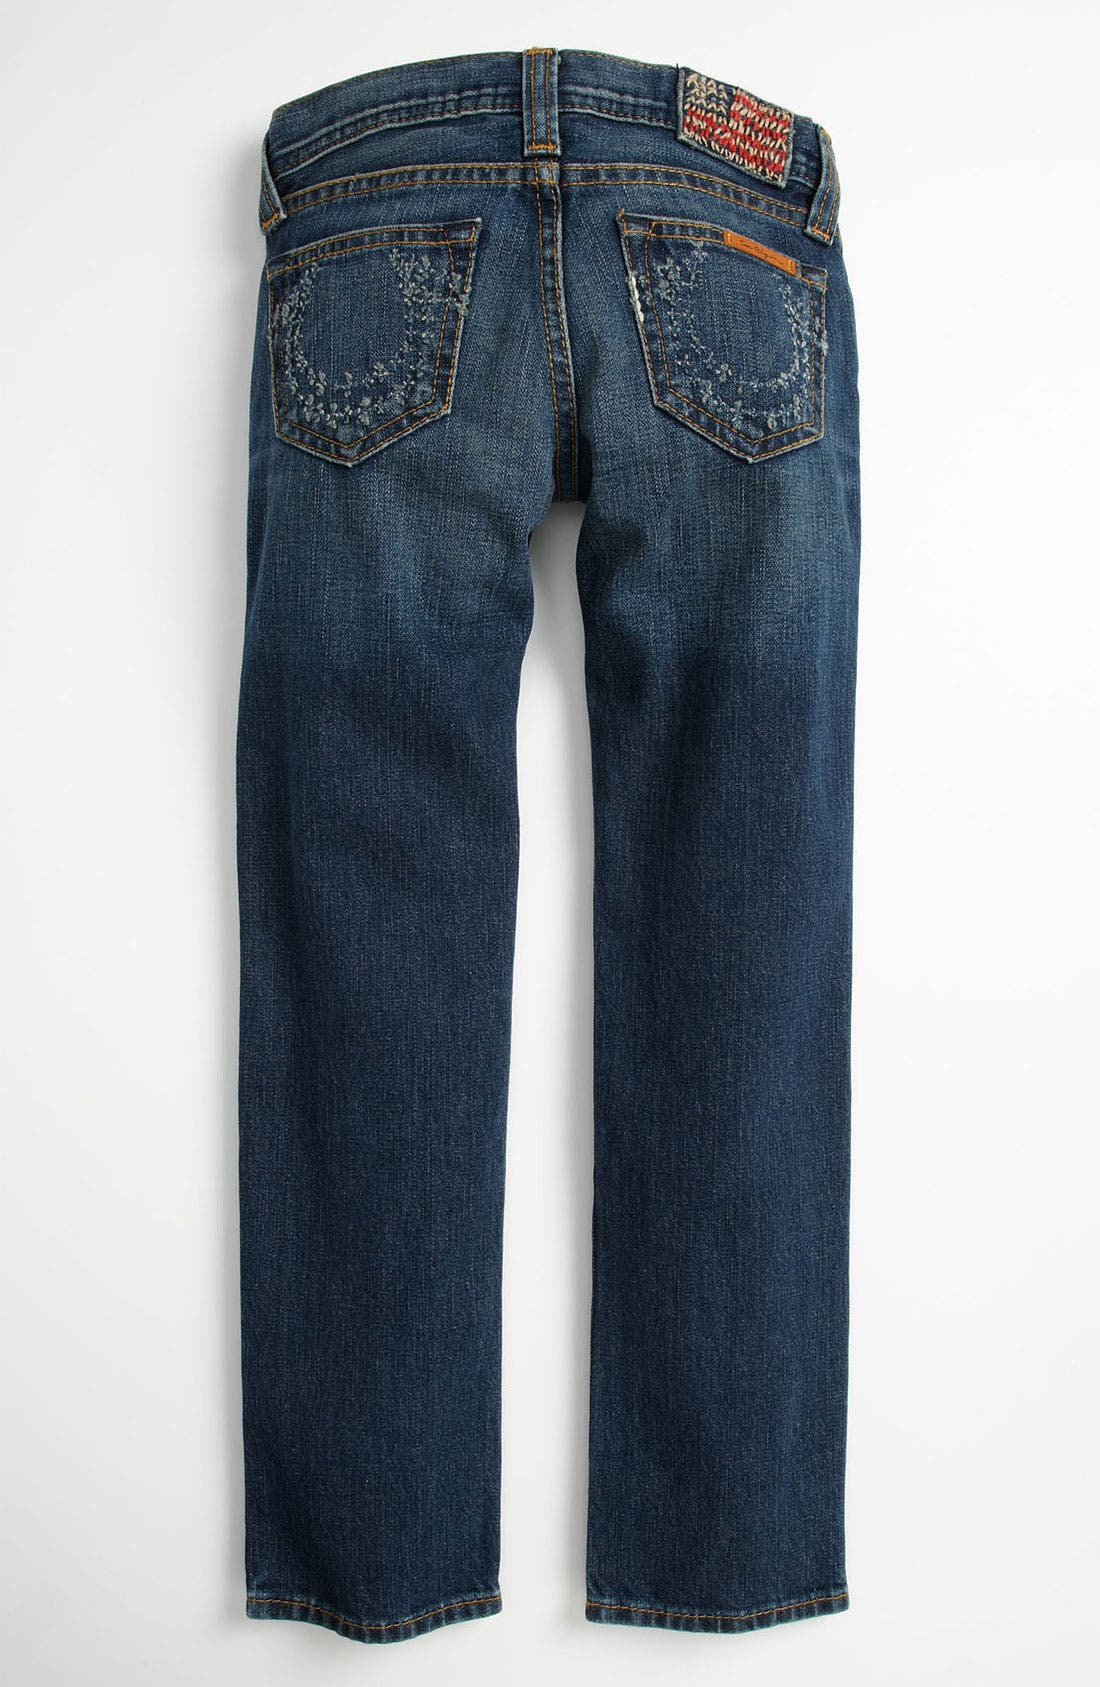 Main Image - True Religion Brand Jeans 'Rocco Phantom' Skinny Jeans (Big Boys)